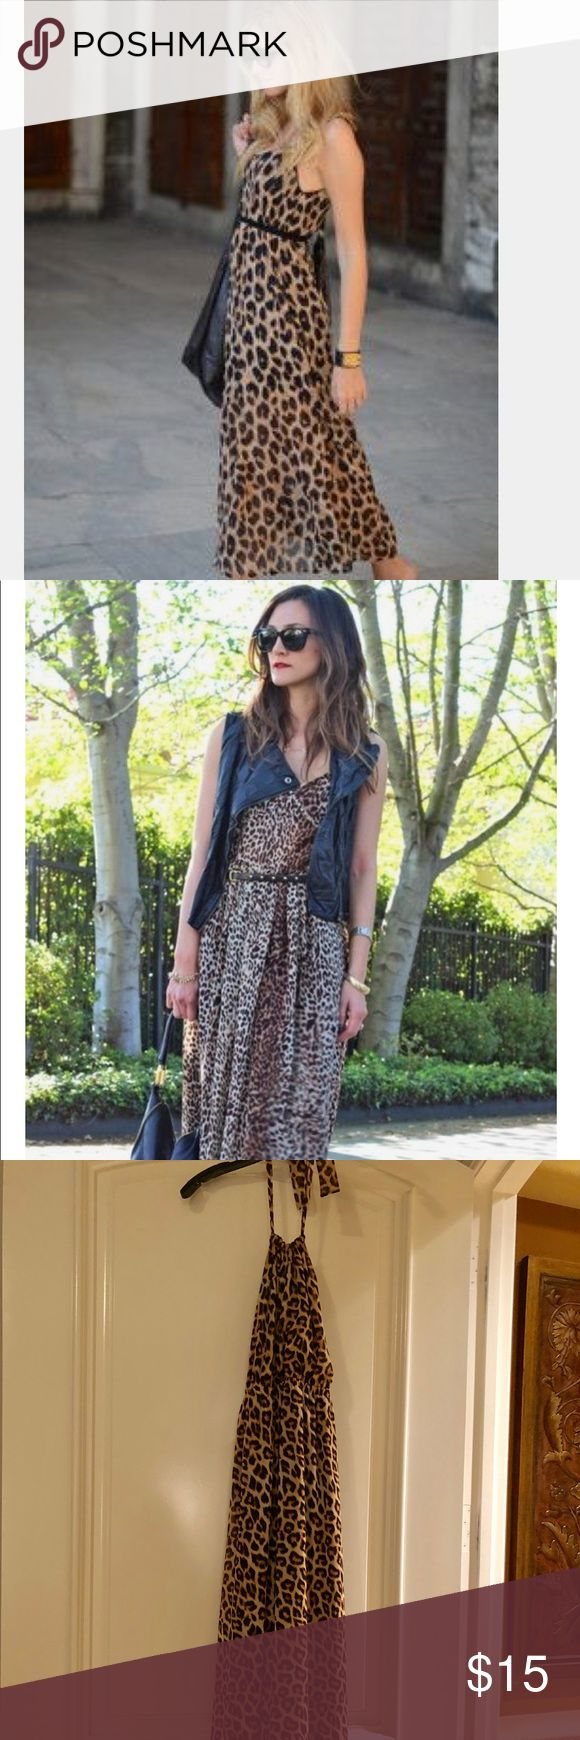 Animal print maxi dress Animal print maxi dress, pair with black jacket or vest! Also add a belt such a great spring look💕 Forever 21 Dresses Maxi